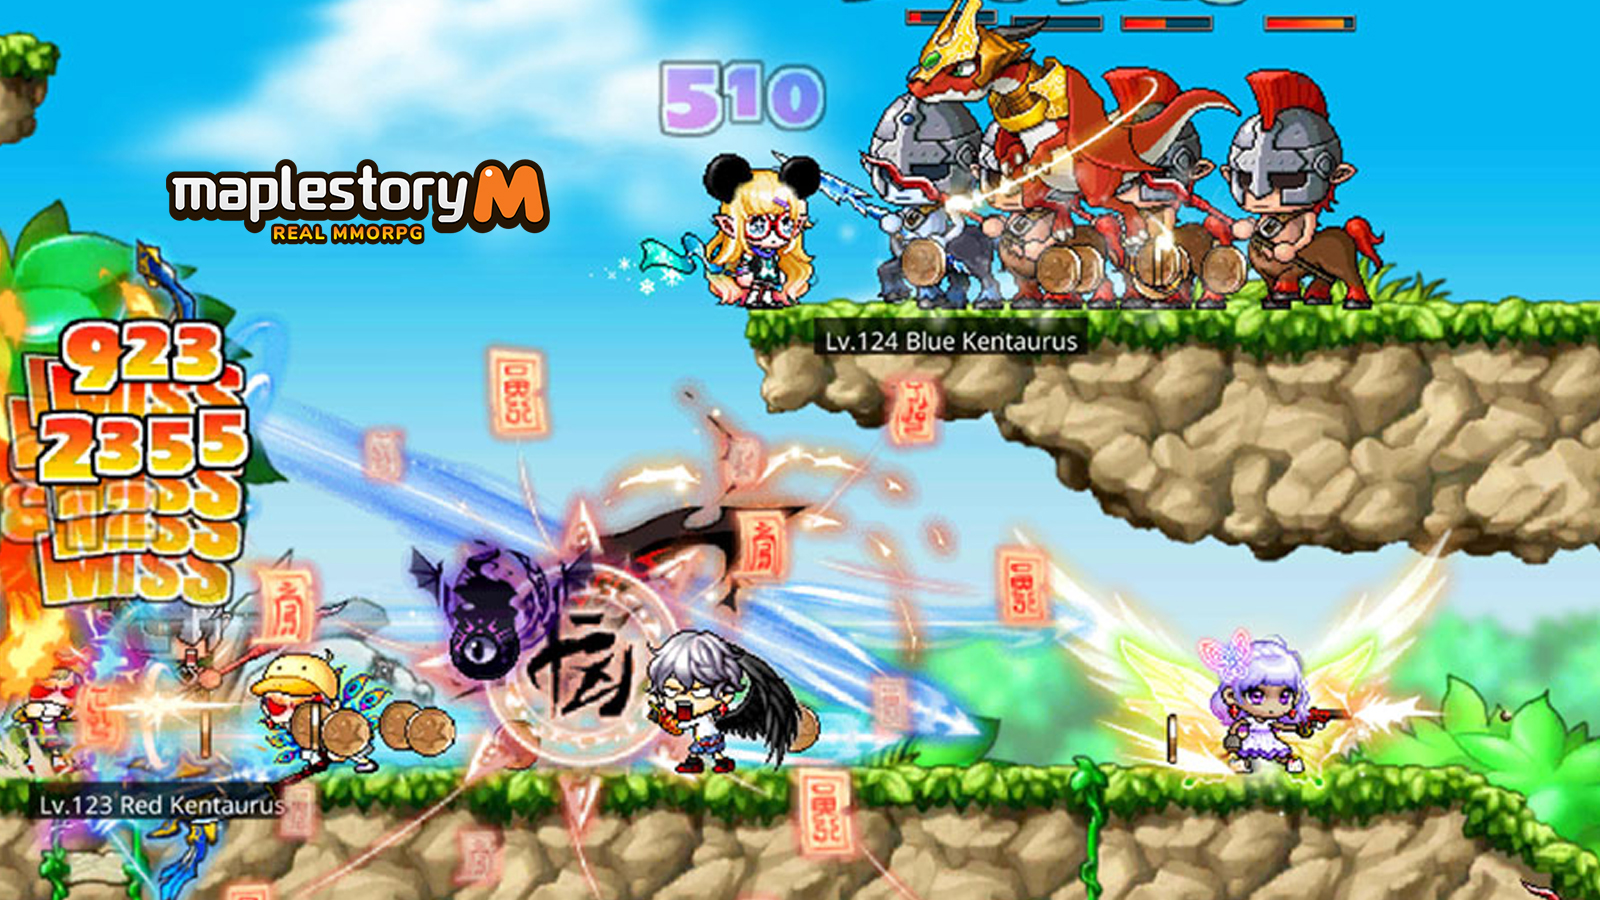 Maplestory leader a